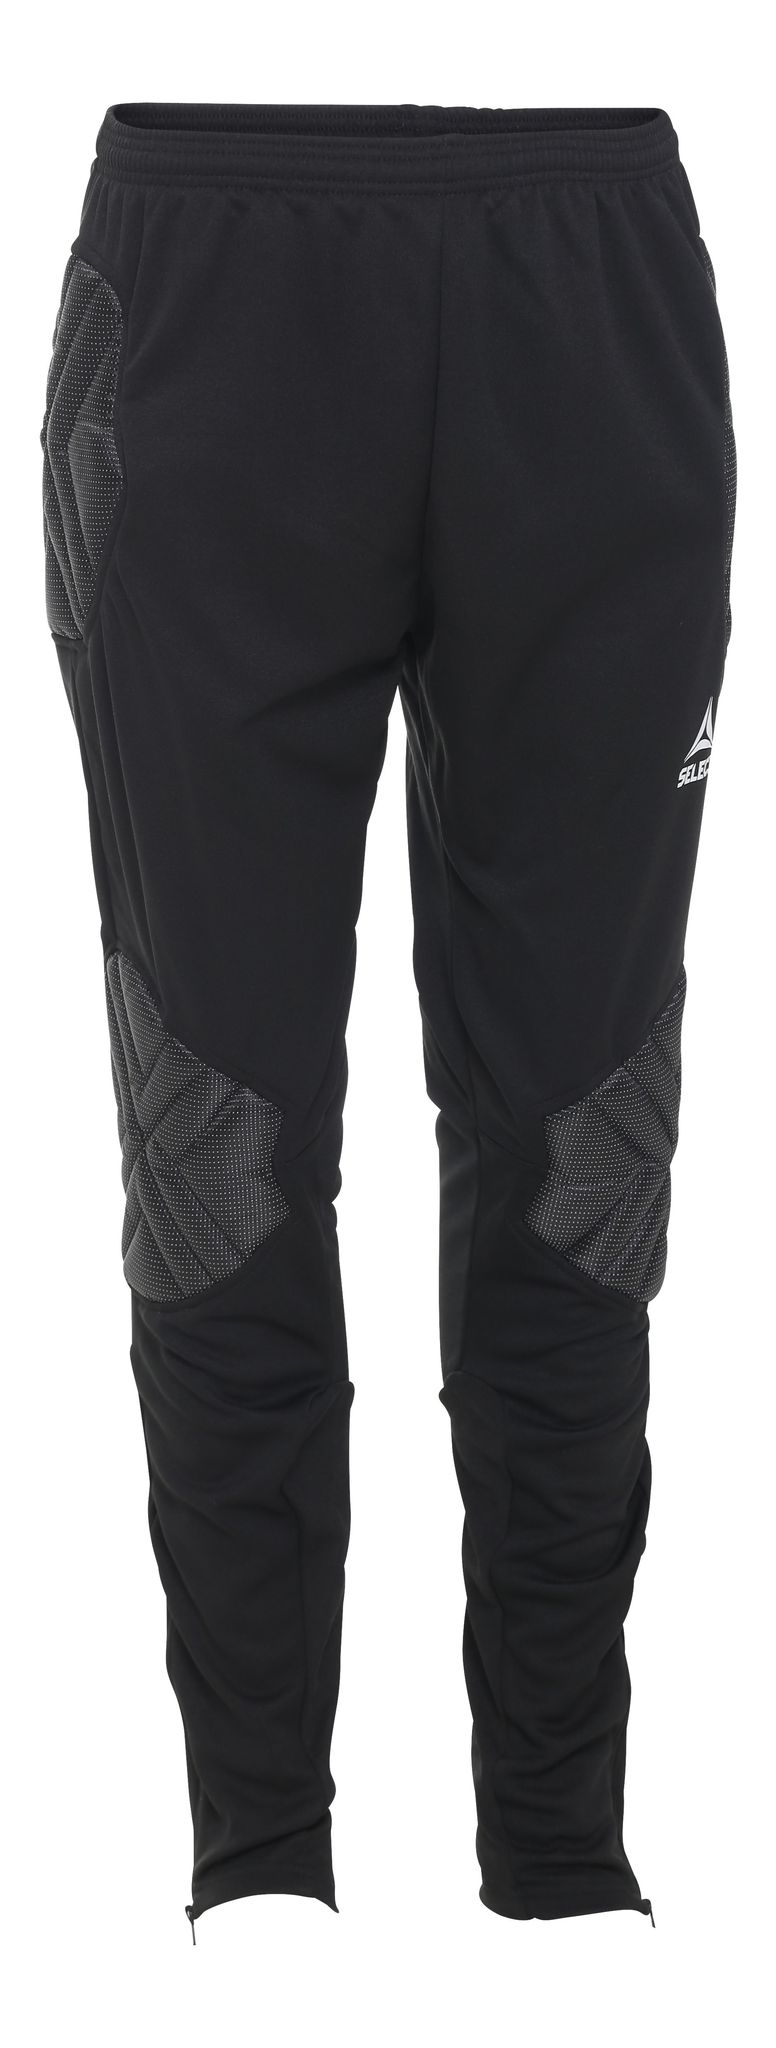 Utah GK Goalkeeper Pants